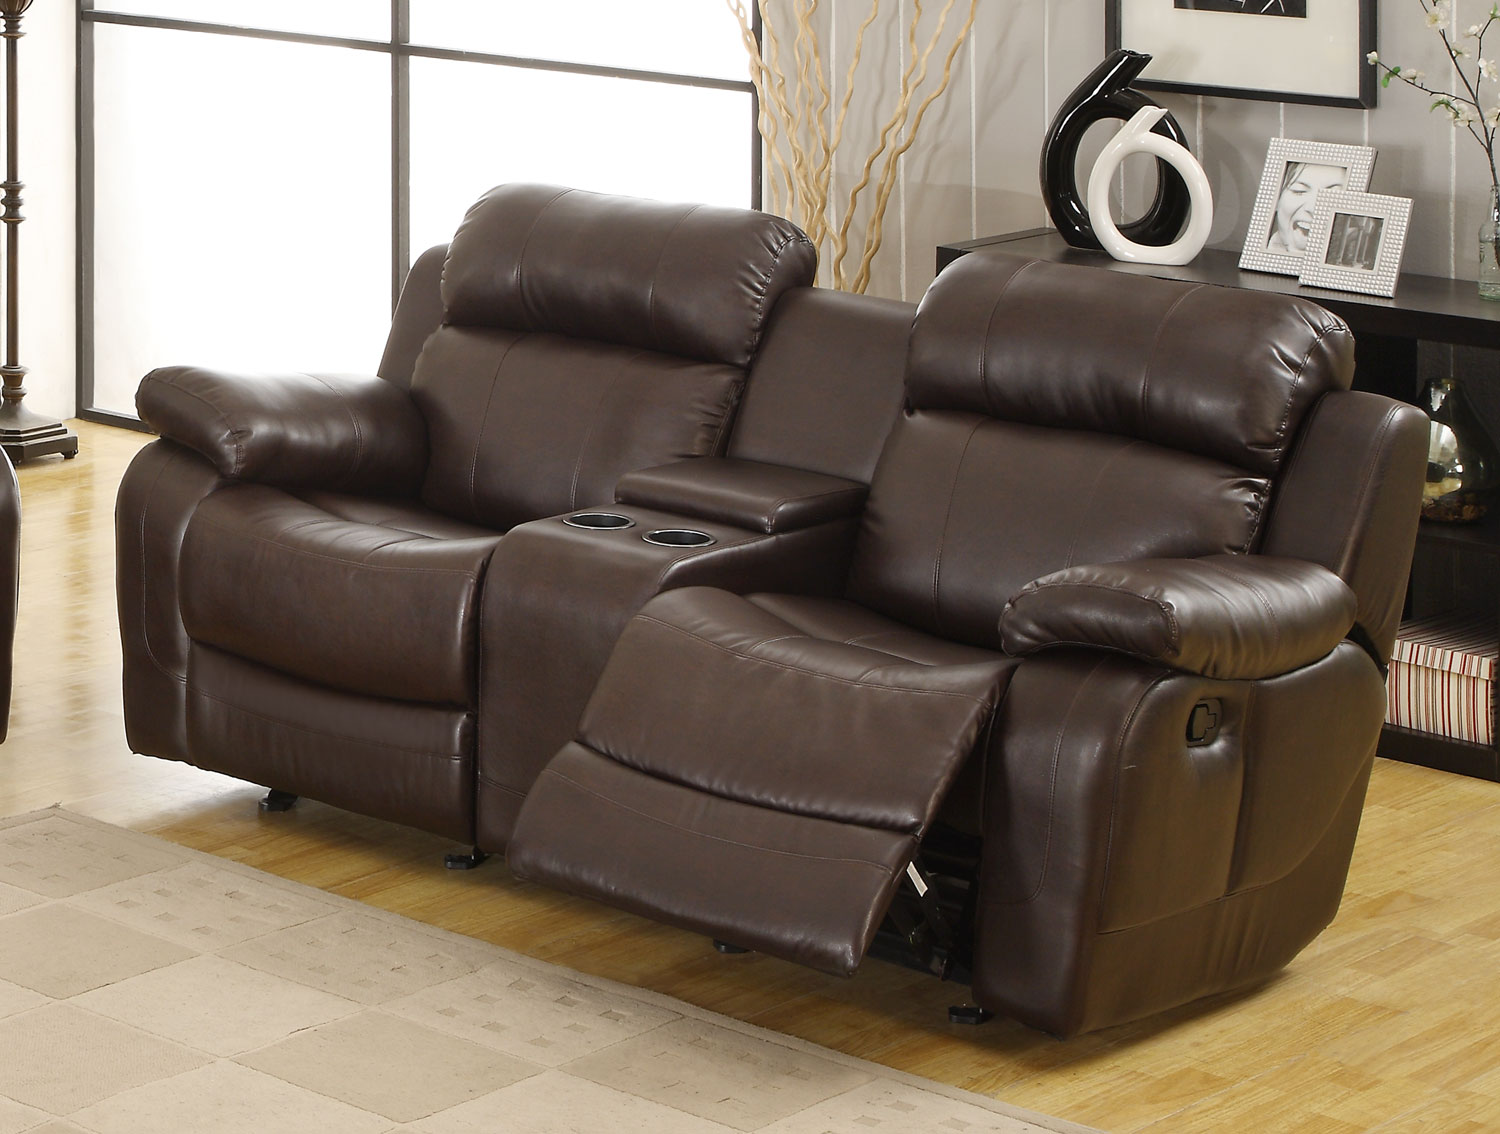 Homelegance Marille Love Seat Glider Recliner with Center Console - Dark Brown - Bonded Leather Match